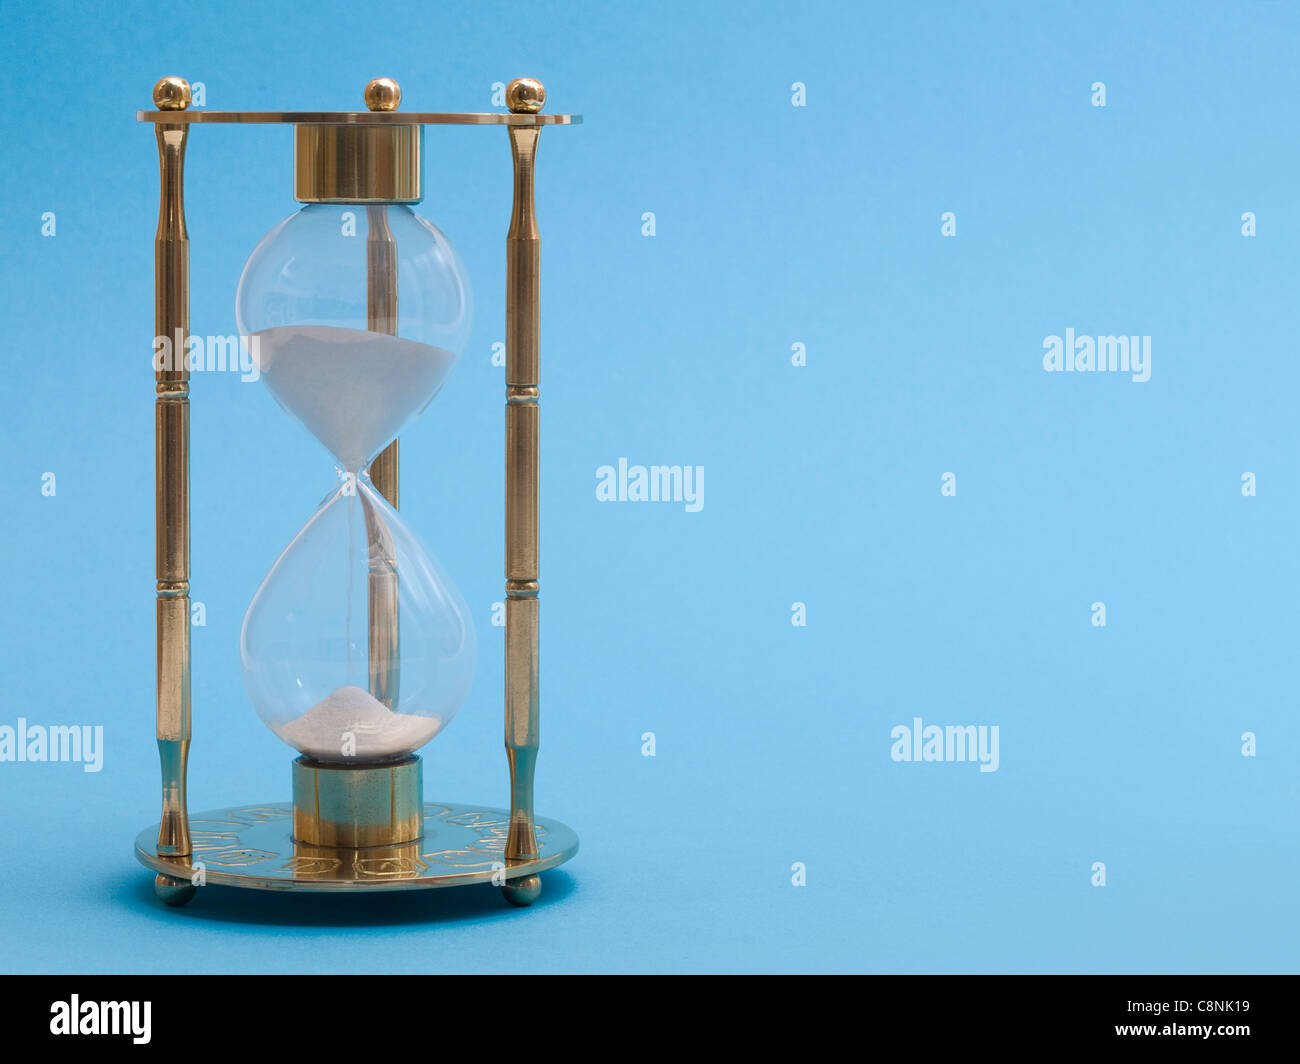 Detail photo of a golden sand glass in front of a blue background Stock Photo